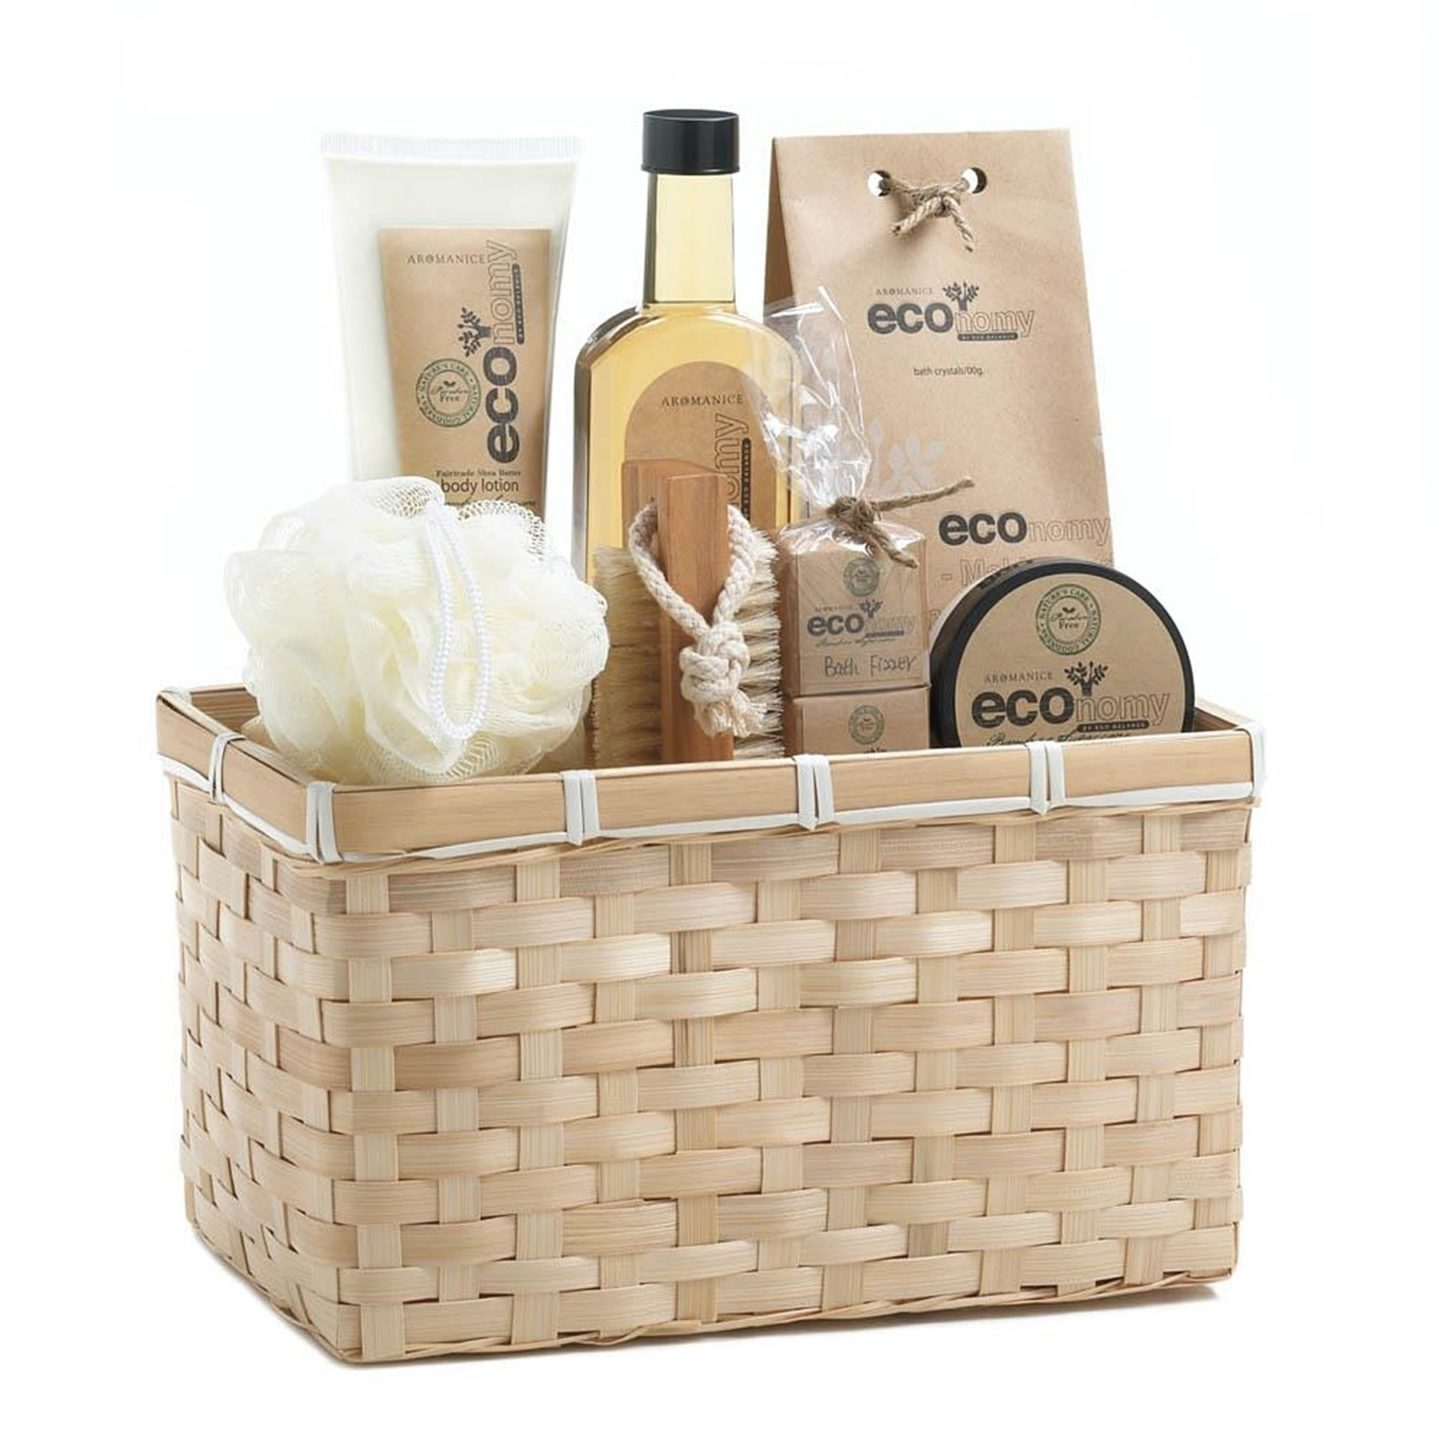 Spa gift basket, the perfect gift idea for Christmas for your girlfriend